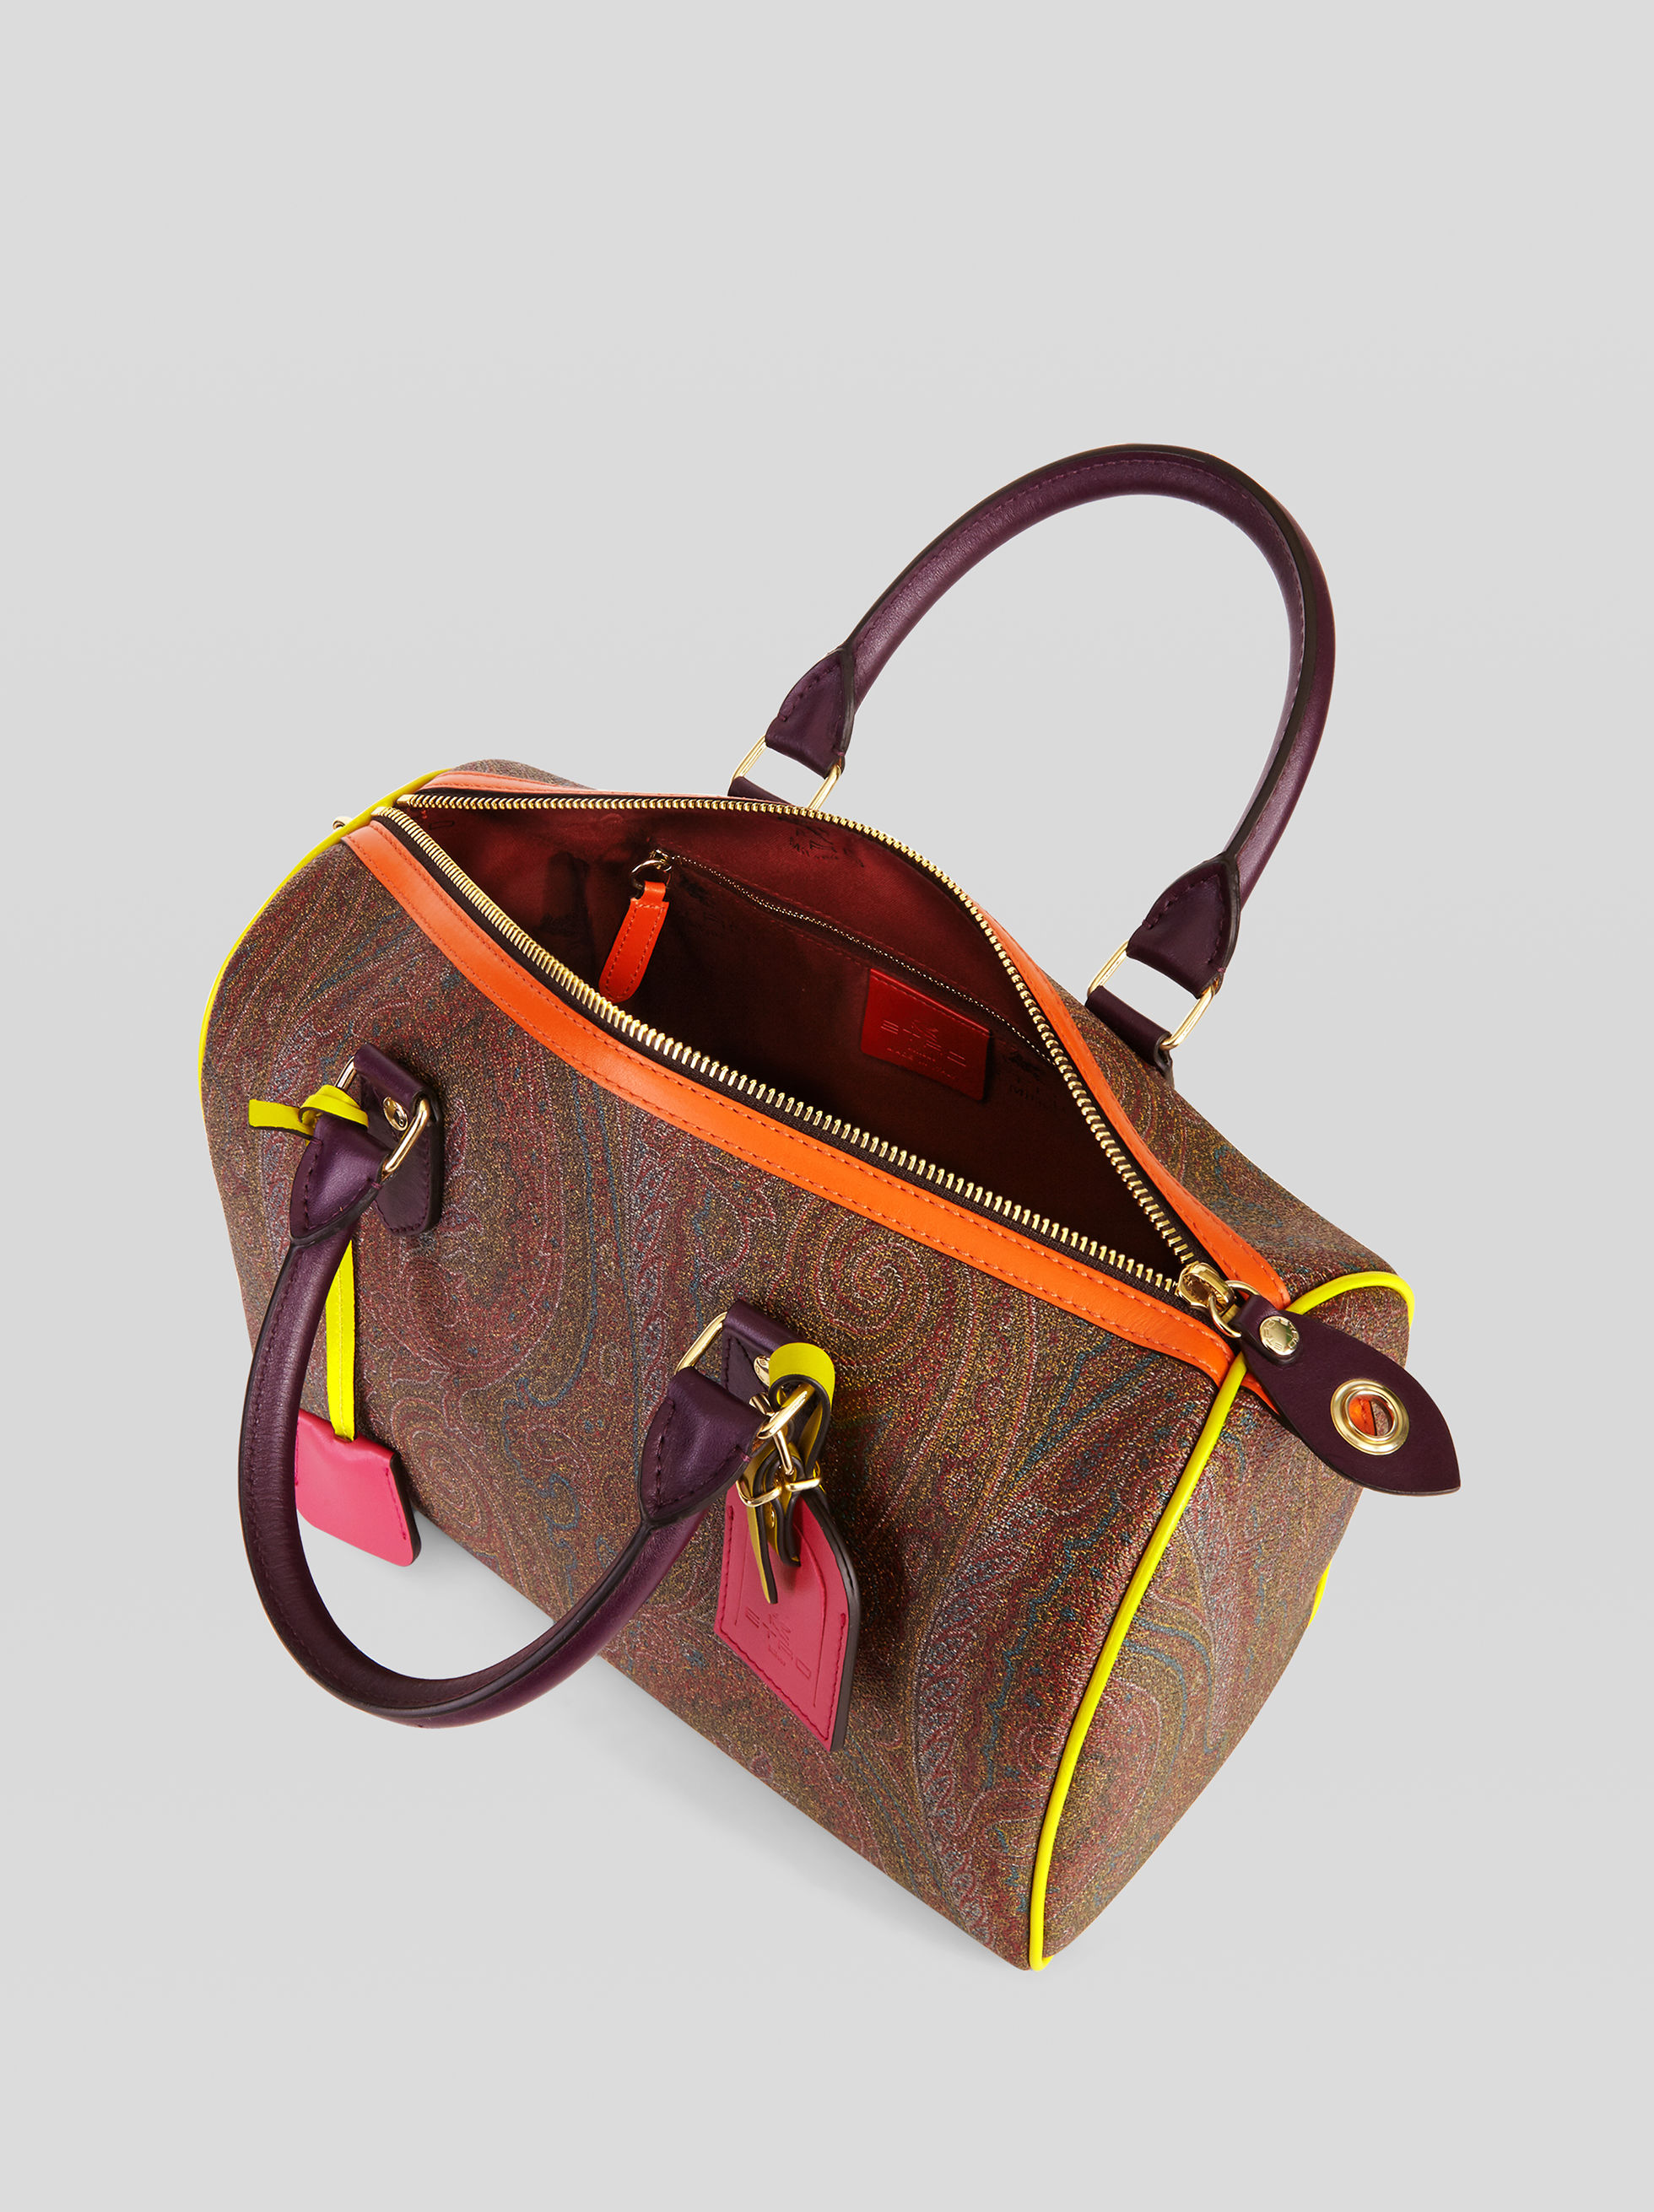 PAISLEY HANDBAG WITH MULTICOLORED DETAILS